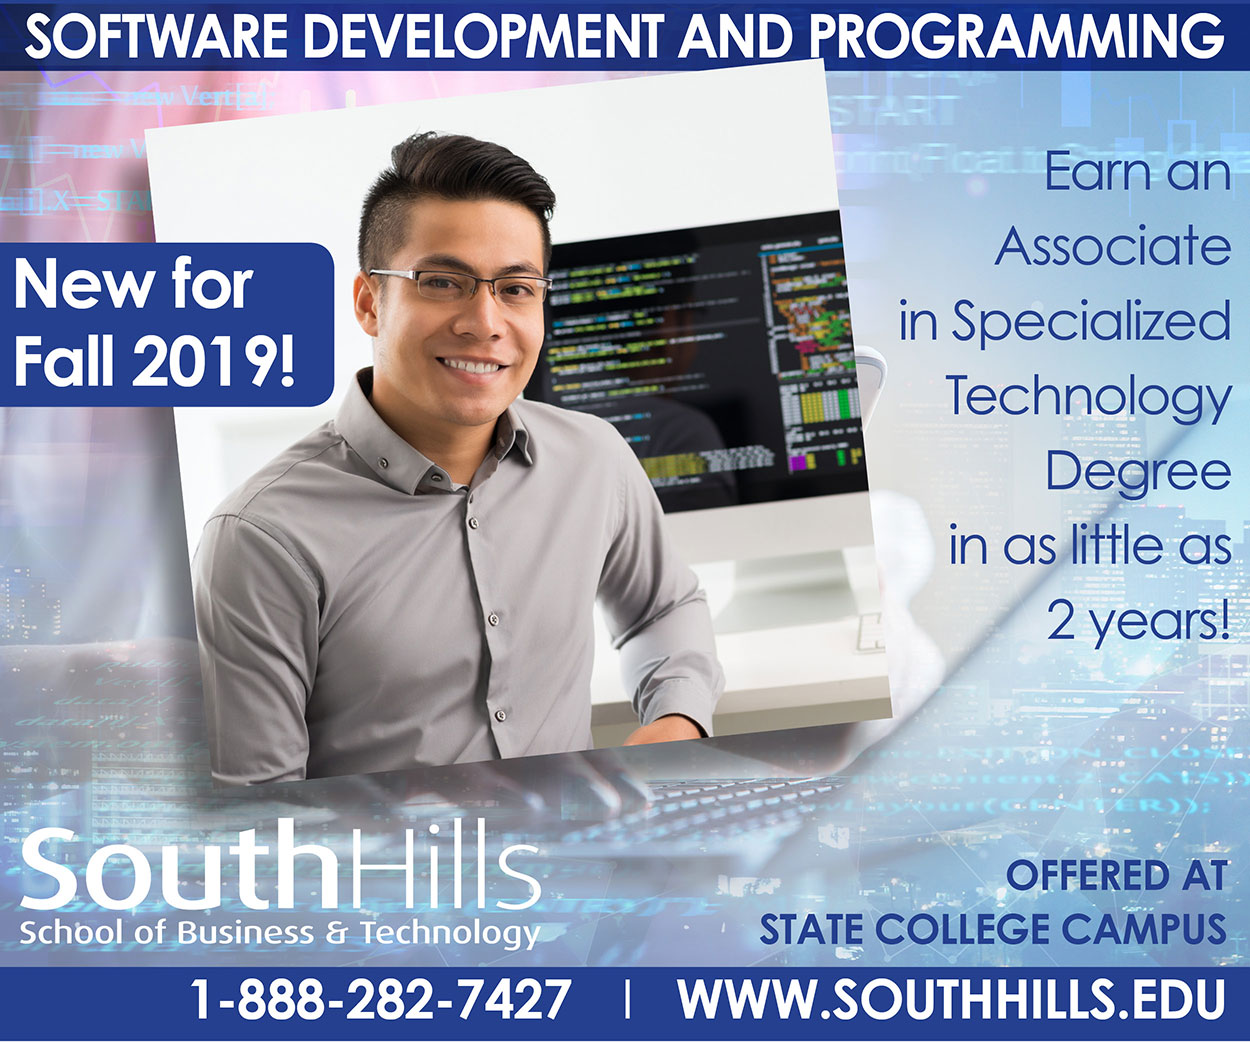 South Hills Announces New Software Development & Programming Associate in Specialized Technology